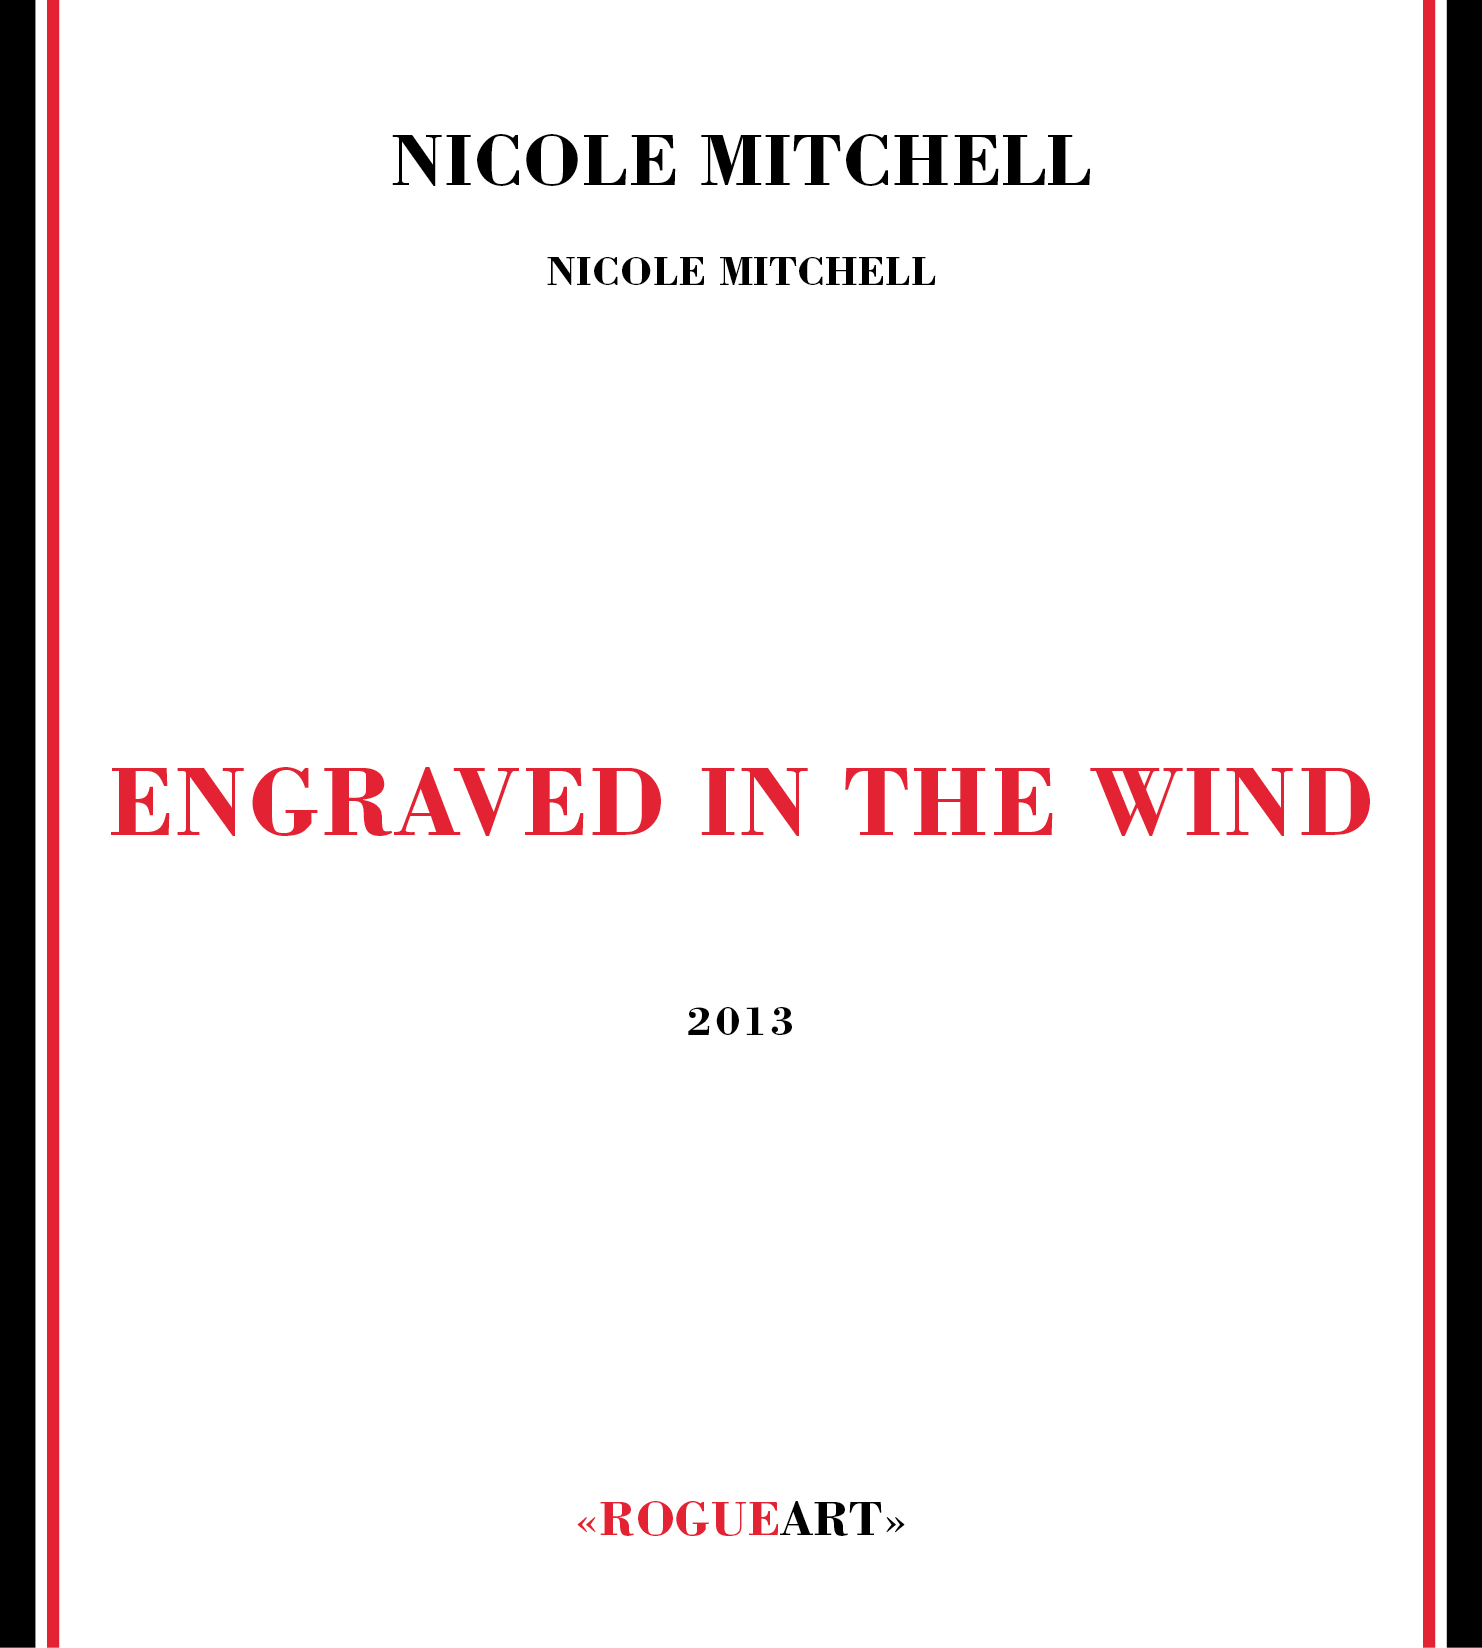 Front cover of the album ENGRAVED IN THE WIND